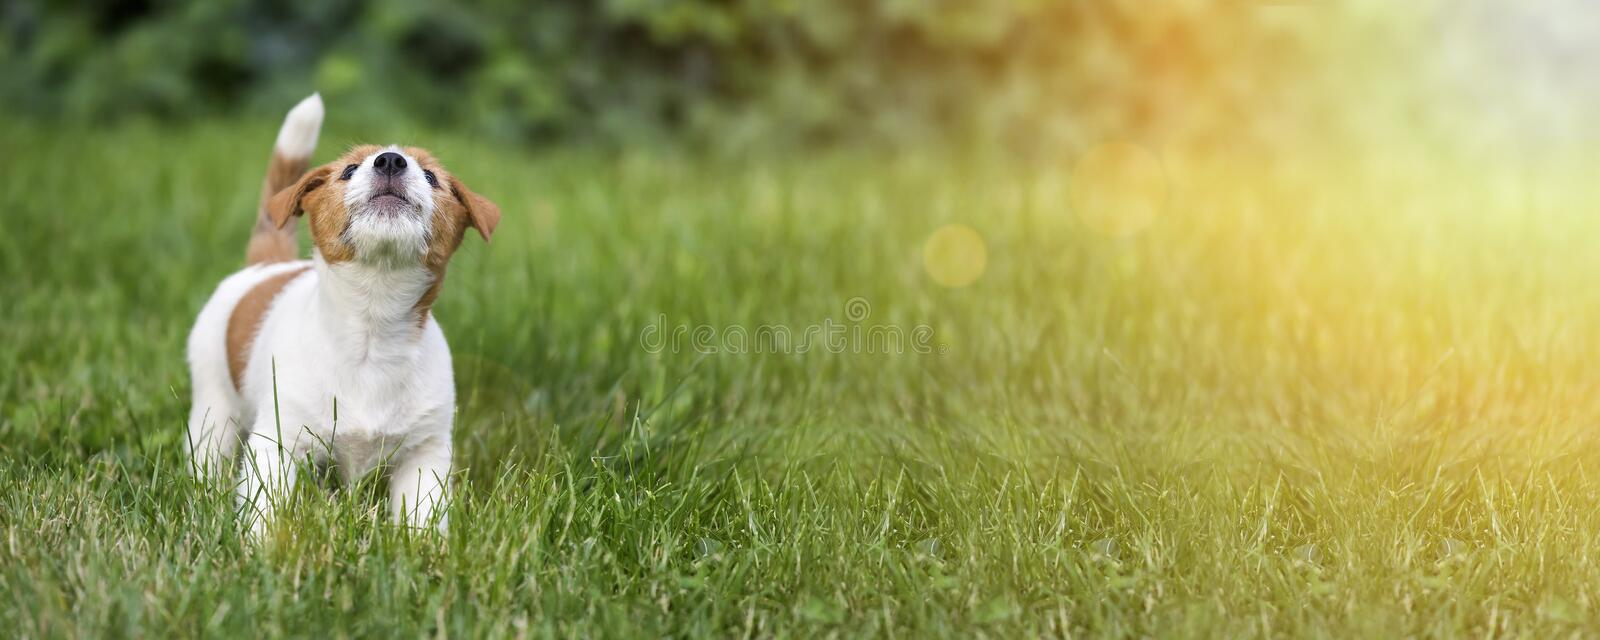 Dog puppy howling in the grass. Funny Jack Russell terrier dog puppy howling in the grass - web banner idea royalty free stock photos